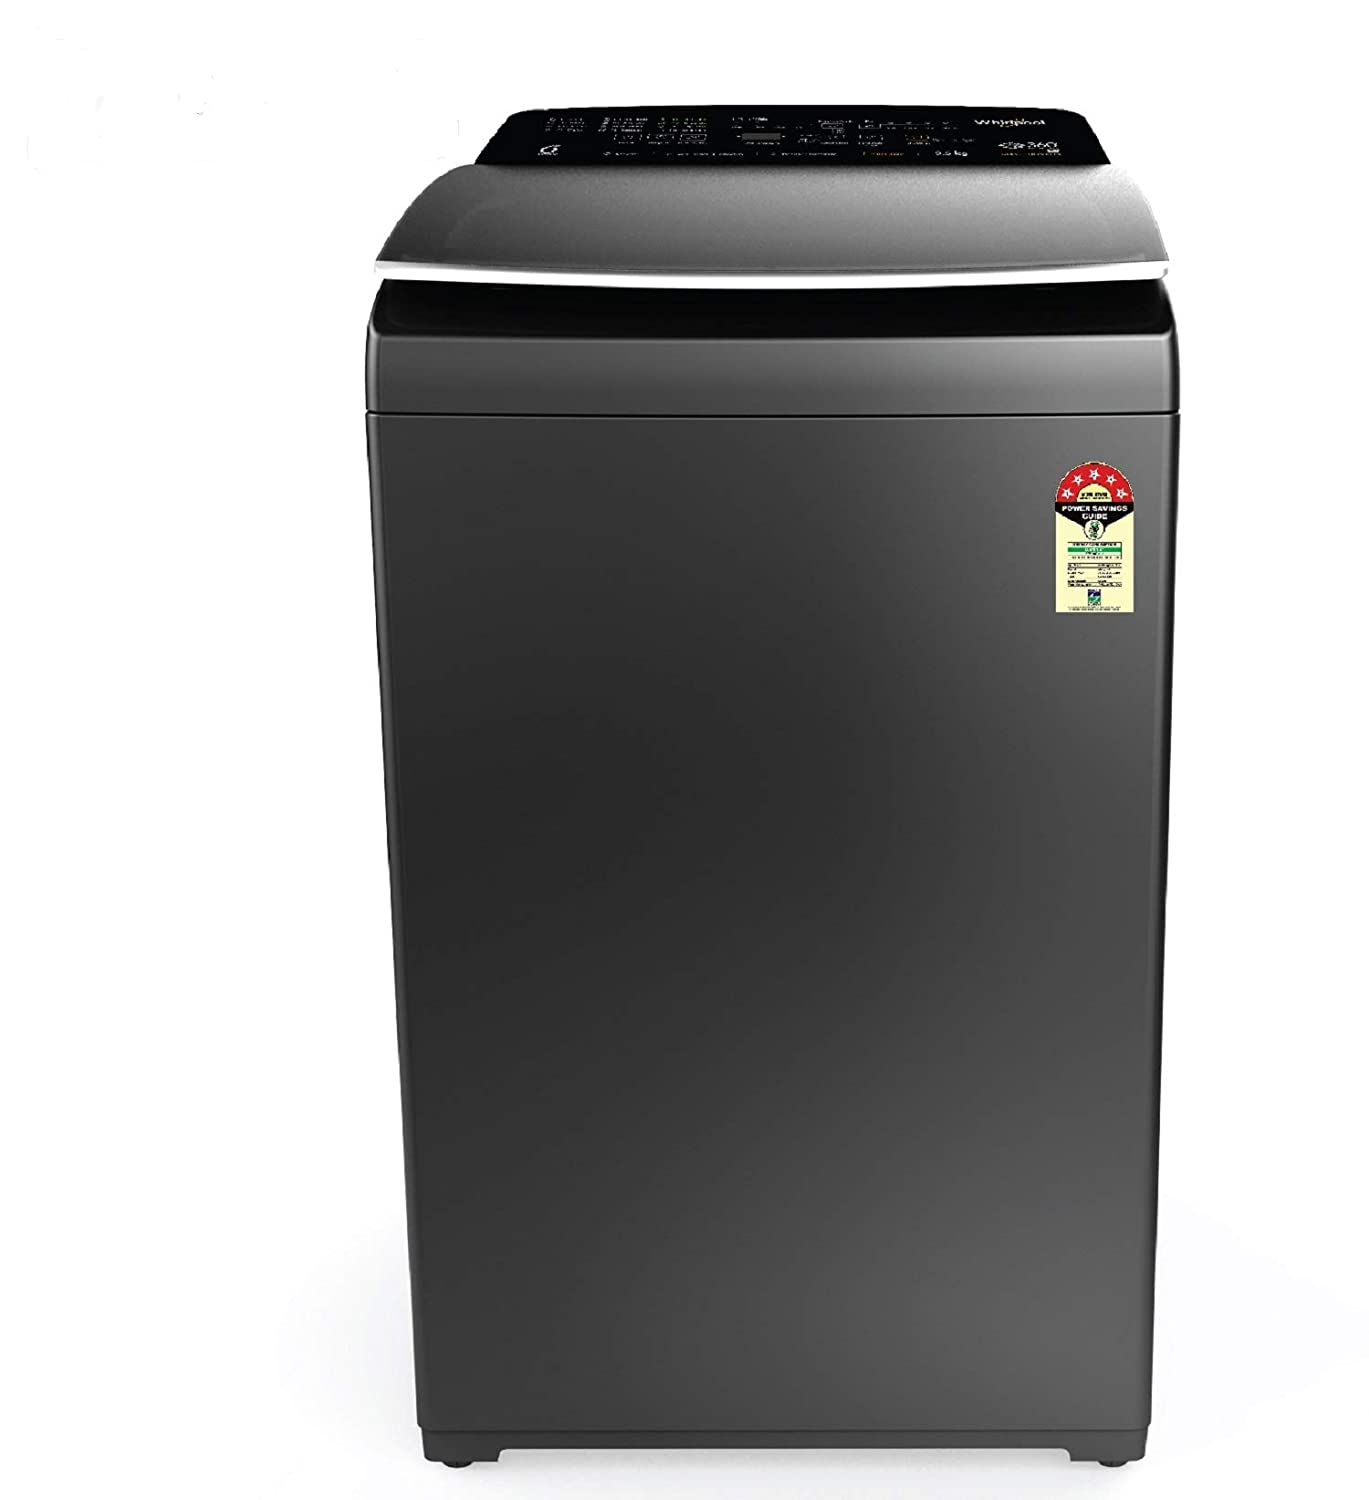 Whirlpool 9.5 Kg Fully-Automatic Top Loading Washing Machine – 360 Degrees BLOOMWASH Pro